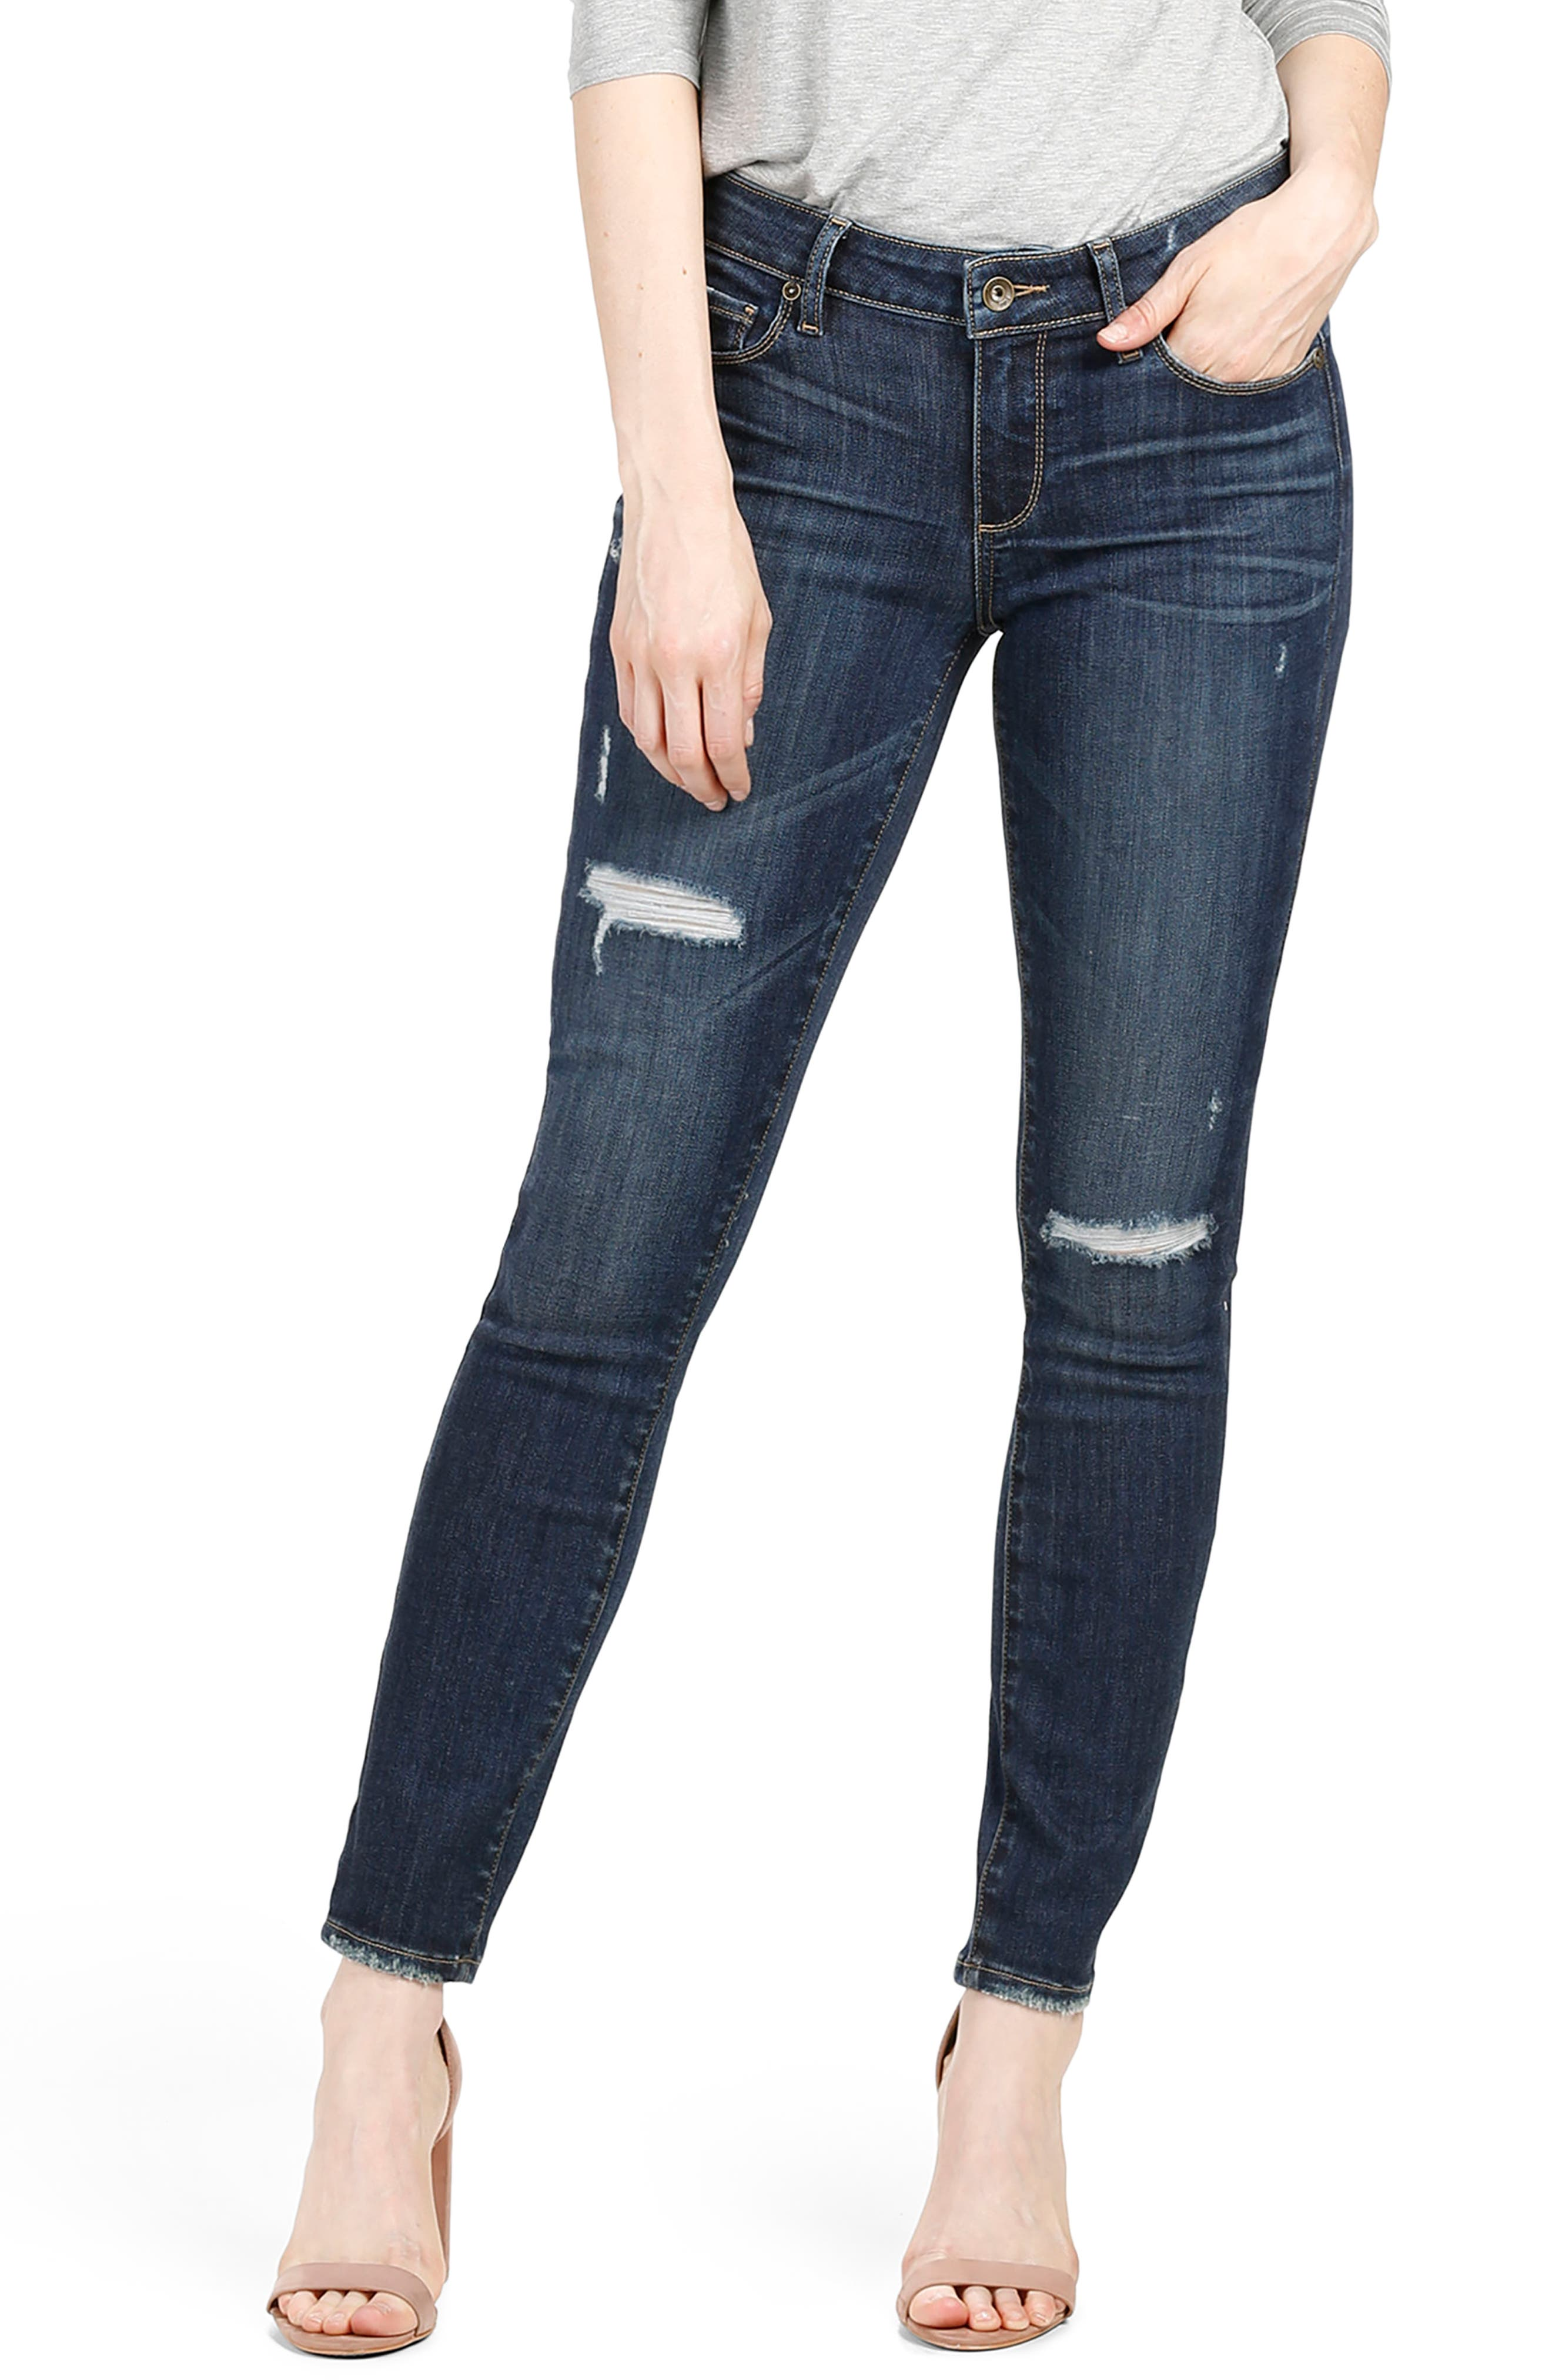 Alternate Image 1 Selected - PAIGE Transcend Vintage - Hoxton Ankle Skinny Jeans (Cleary Destructed)